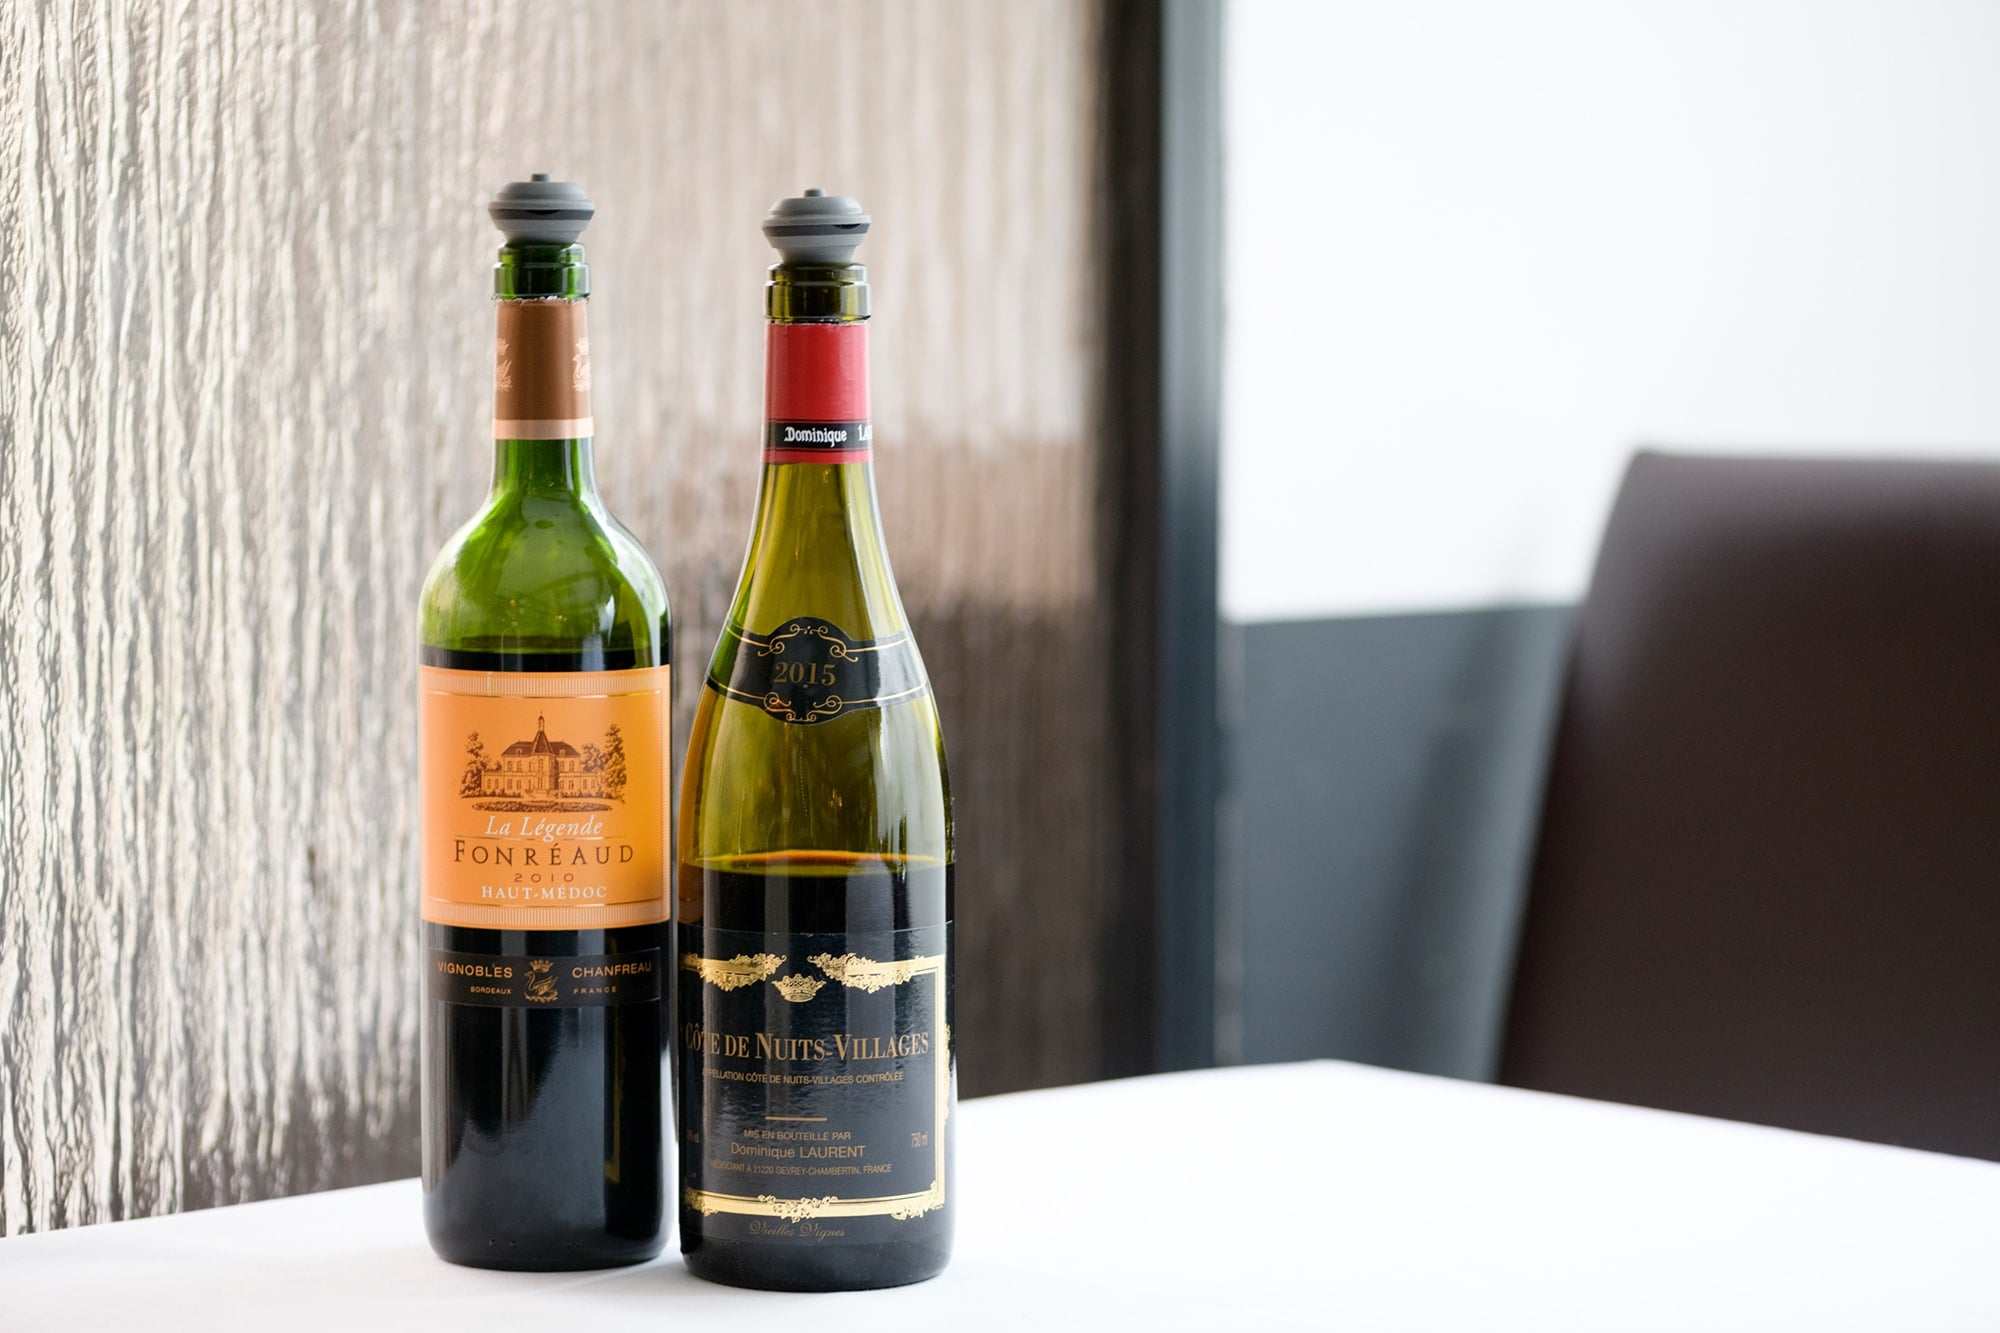 The restaurant offers numerous options of wine by the glass. The wines are mainly from France and selected by the sommelier.